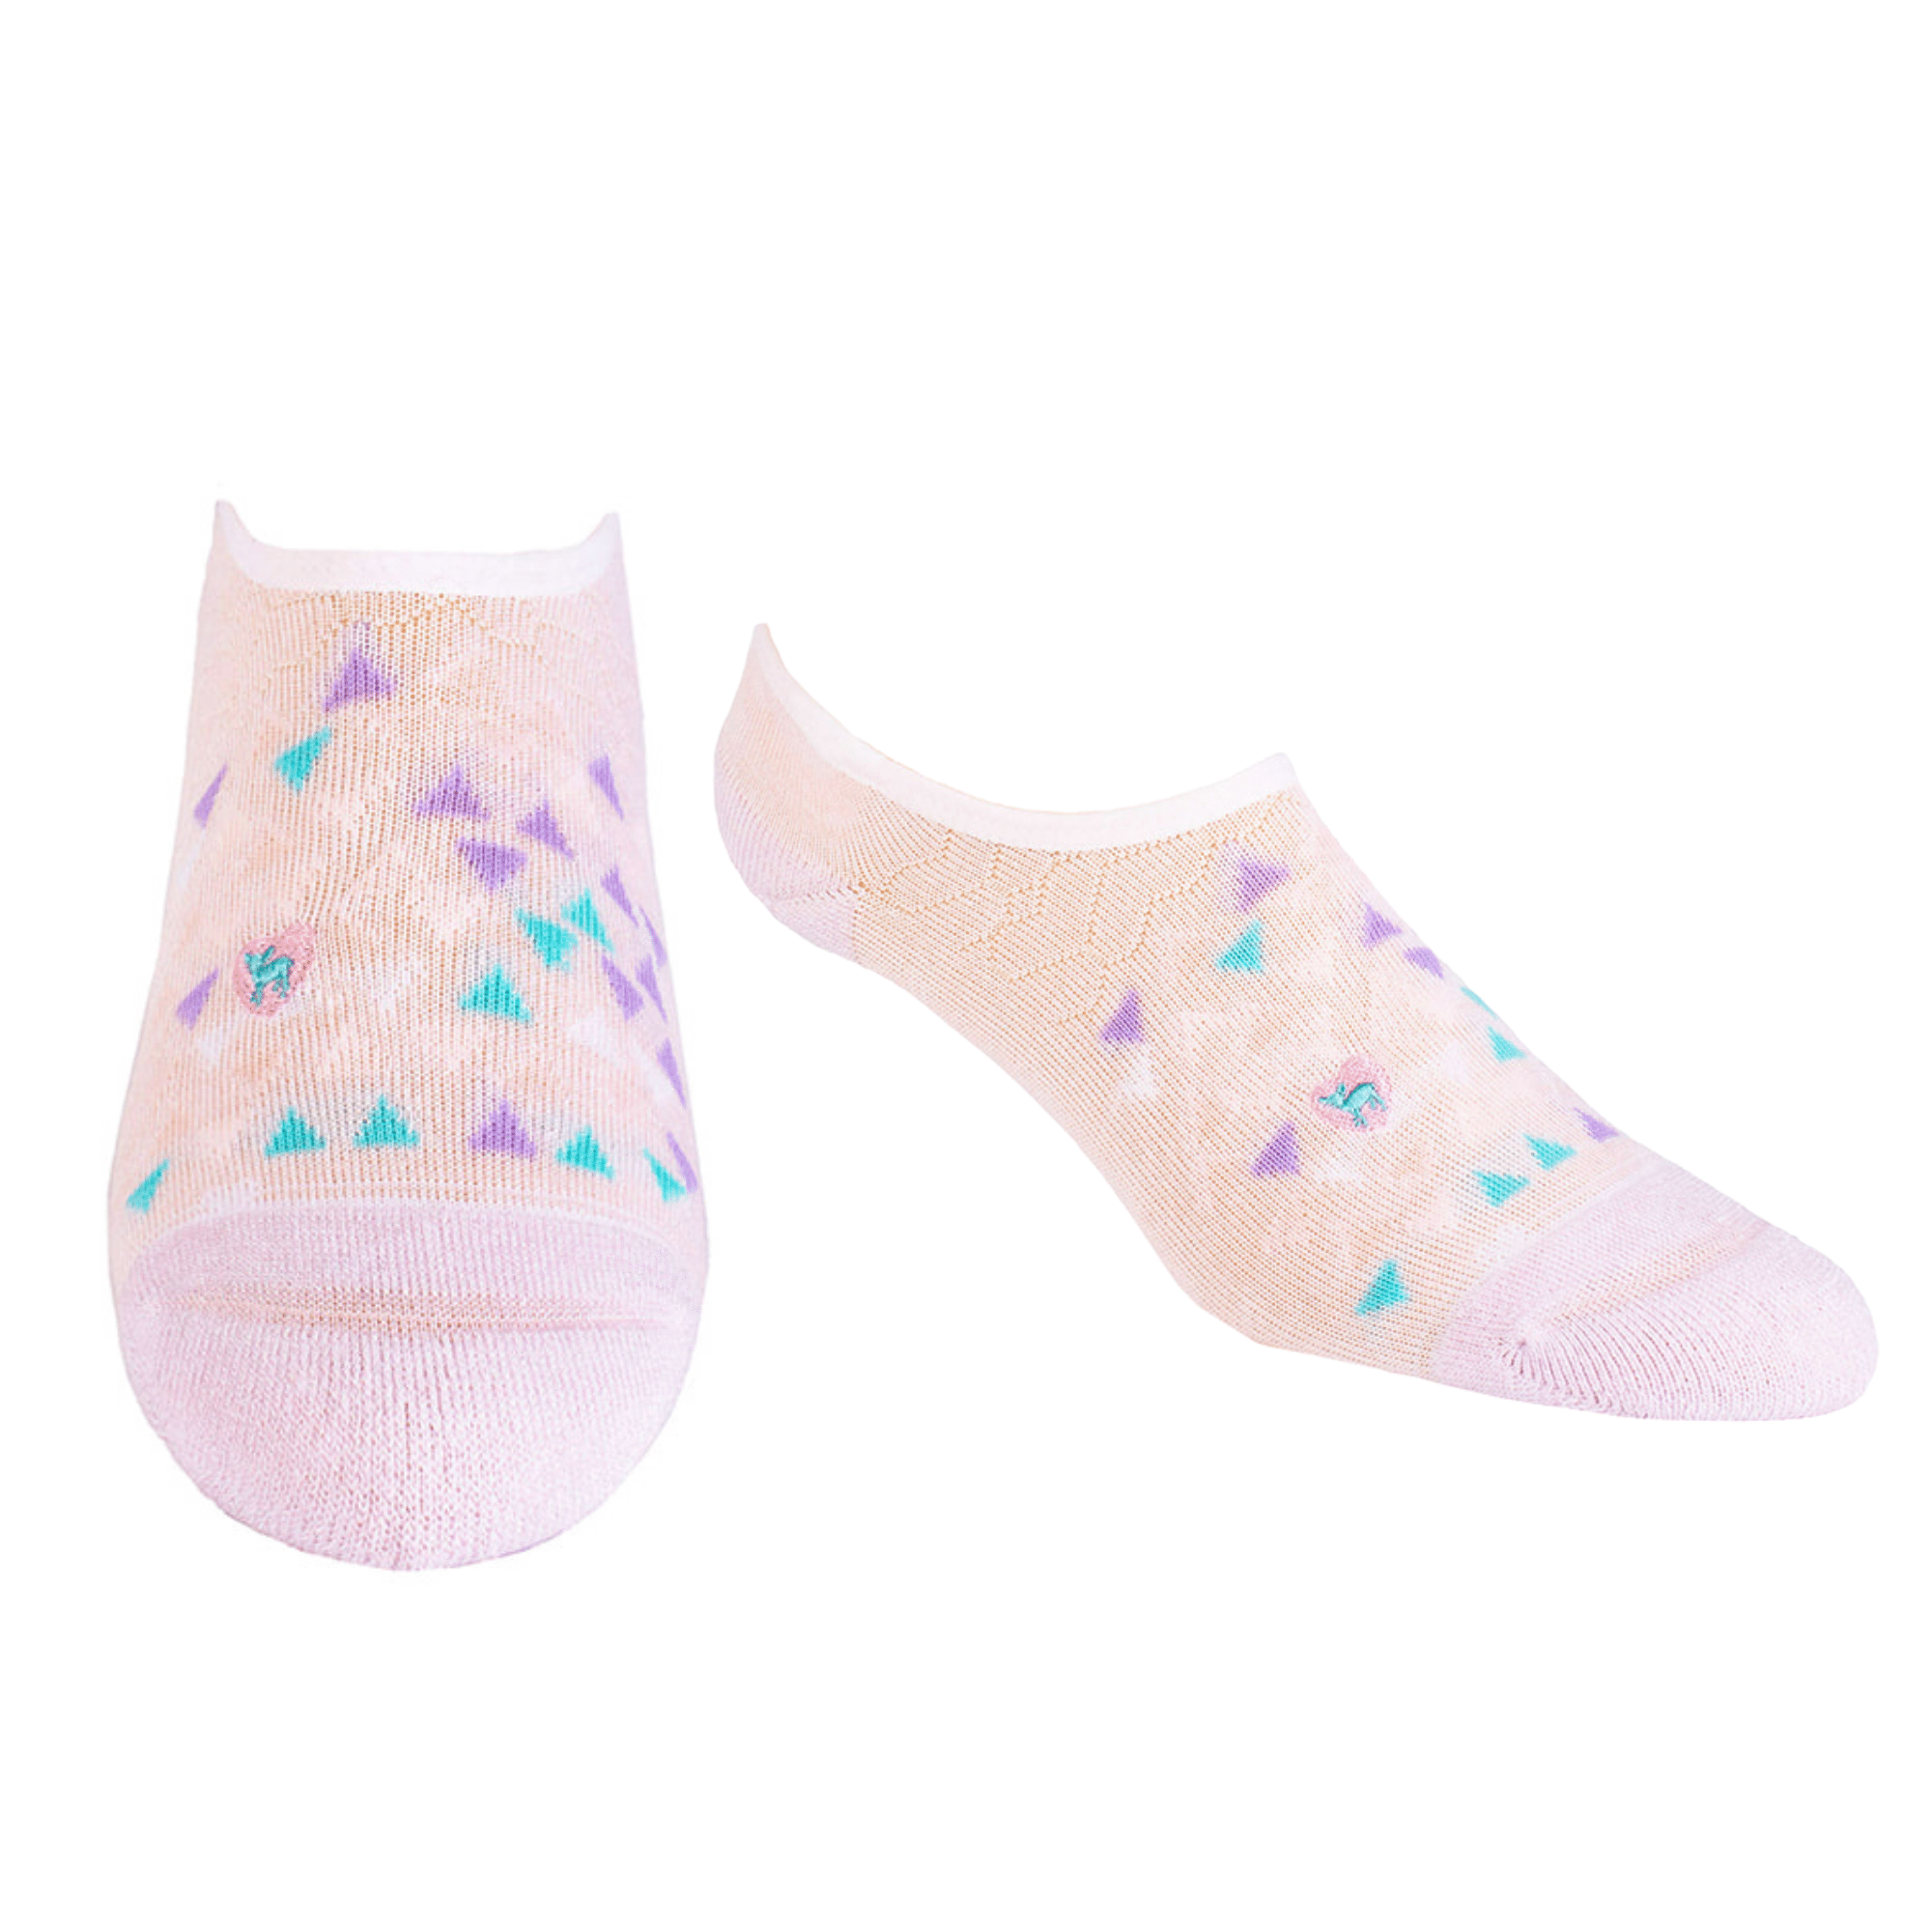 Bamboo Socks | No Fuss No-Show | What's Your Angle Pink